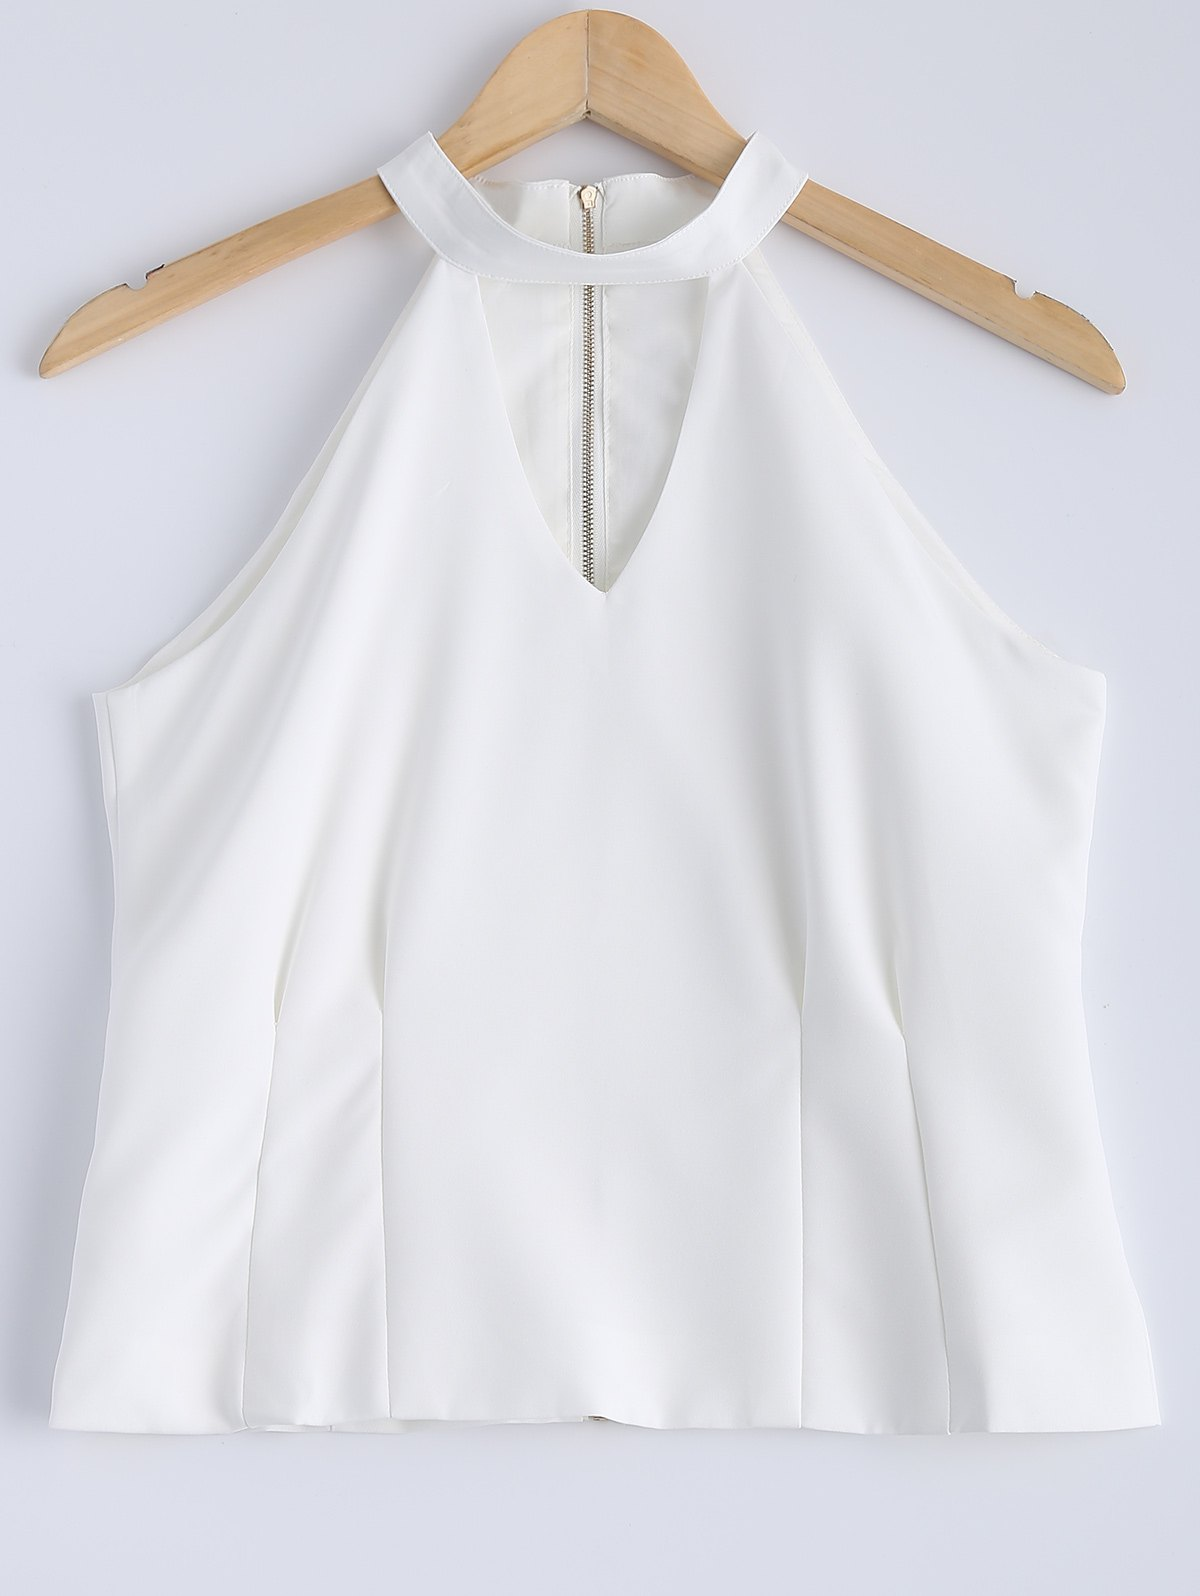 Stylish Women's Solid Color Jewel Neck Cut Out Zipper Fly Sleeveless Top - WHITE M